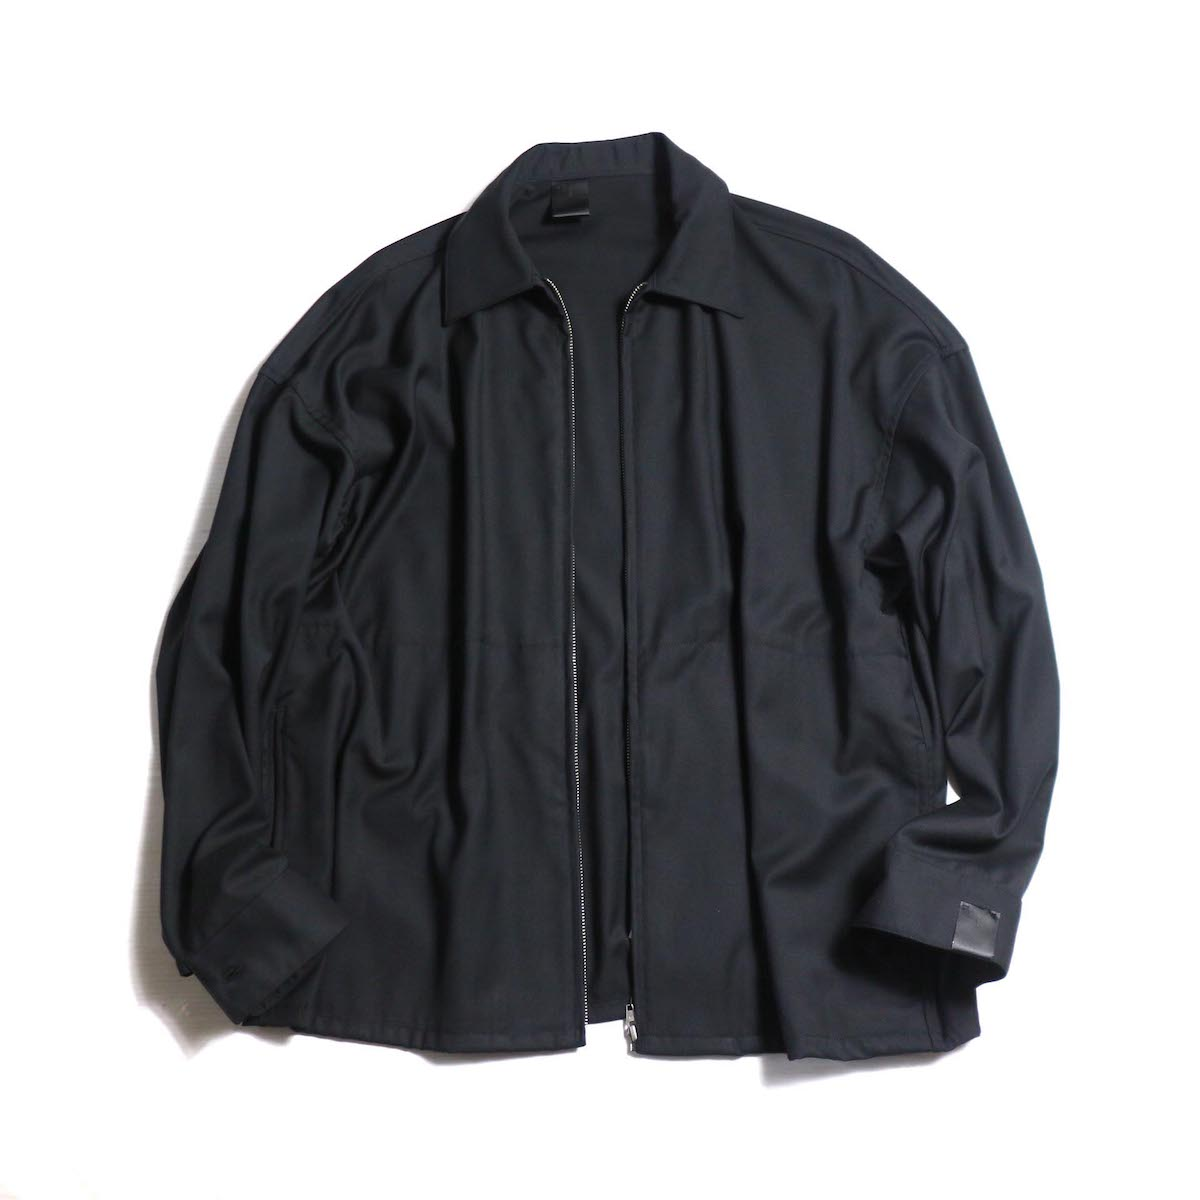 N.HOOLYWOOD / 282-SH08-013-peg ZIP UP SHIT BLOUSON -BLACK